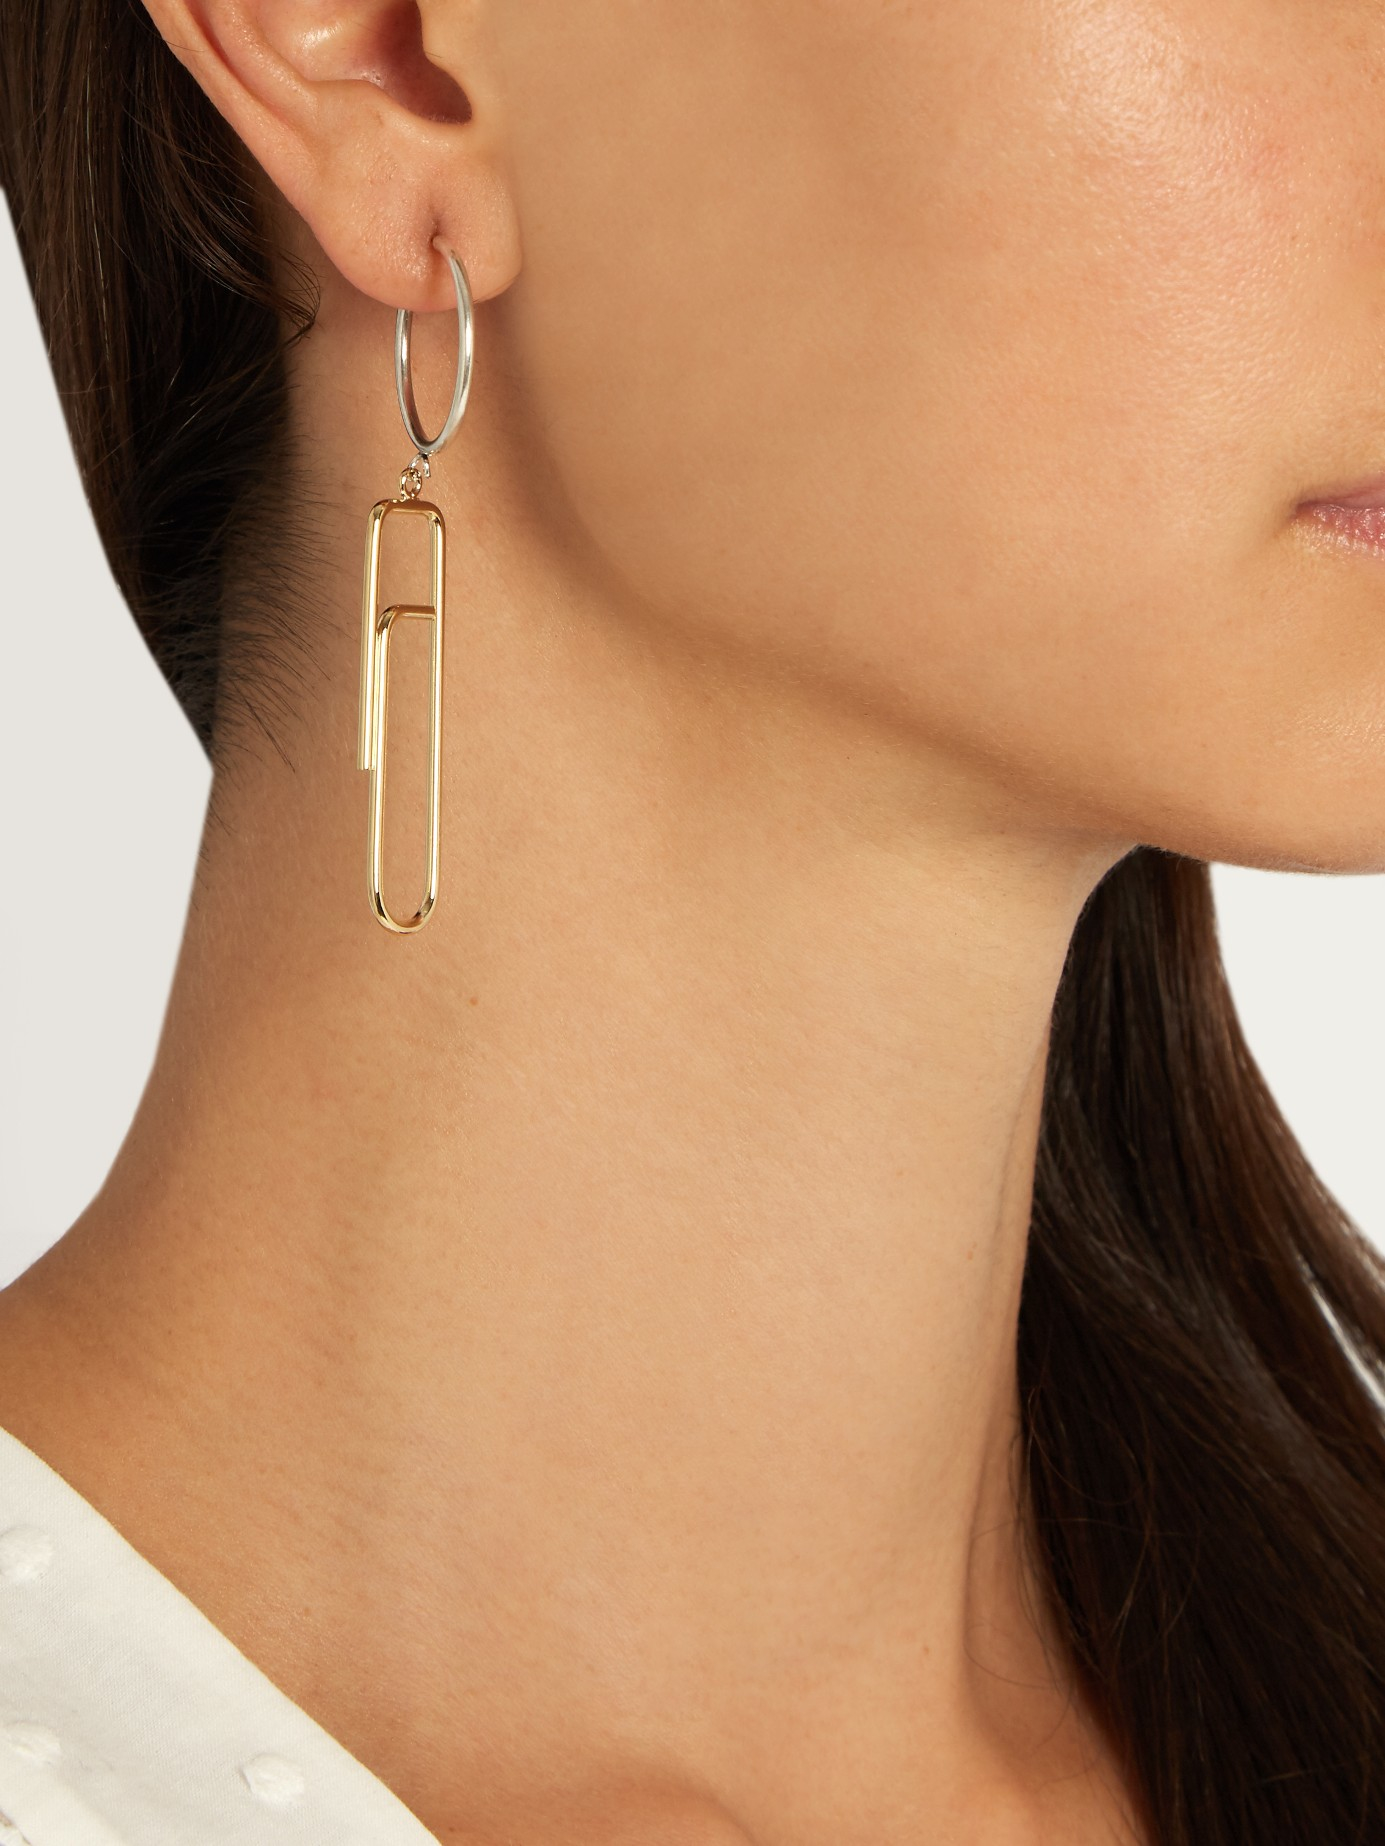 Isabel Marant Glum Earrings in Metallics AZUVxoCHmY